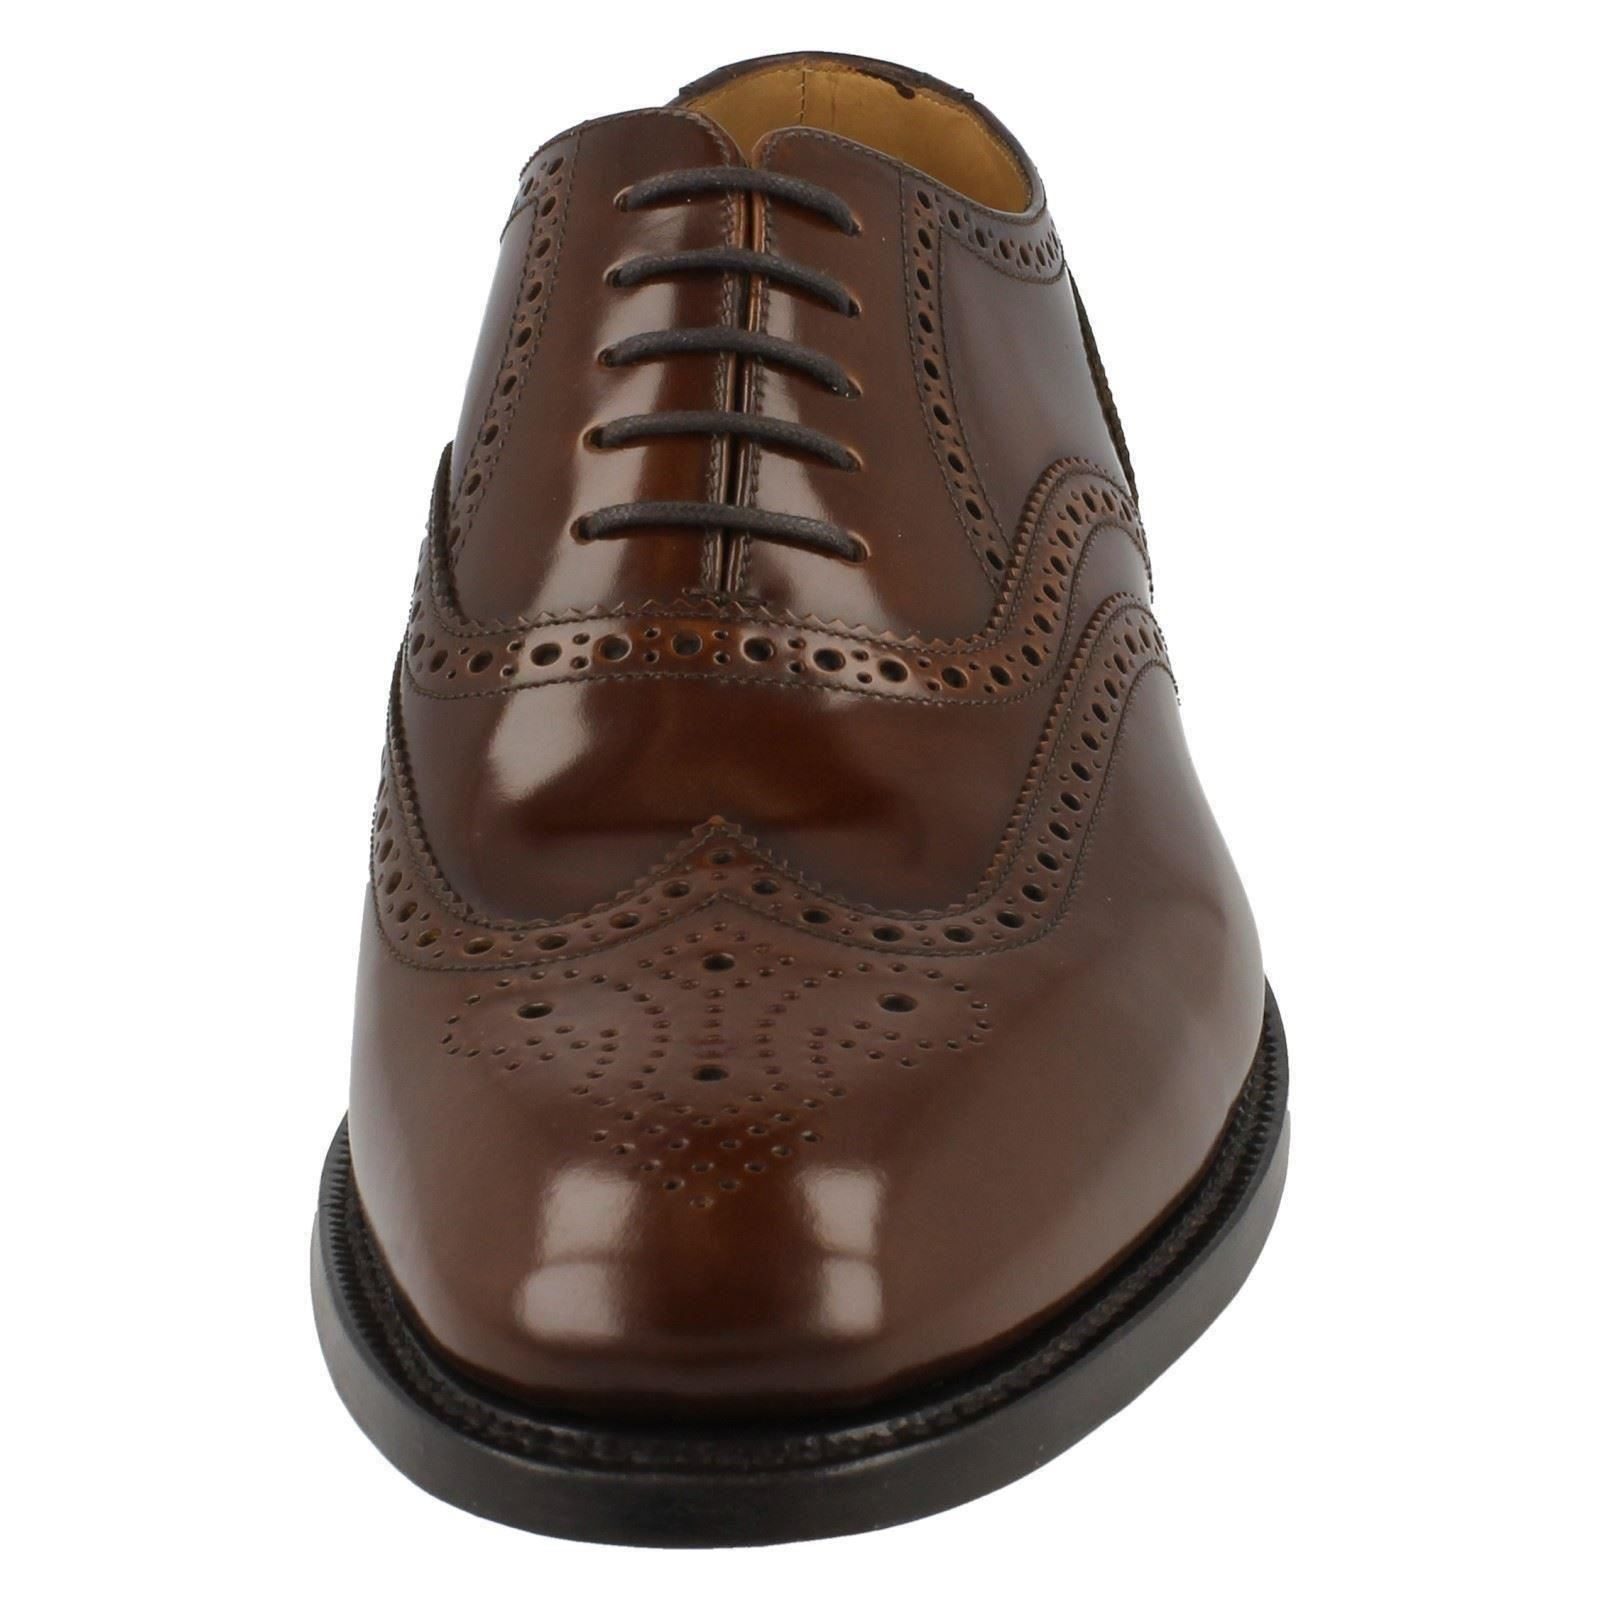 Mens Fitting Loake Formal Shoes Fitting Mens G Label - 202 c8f8a9